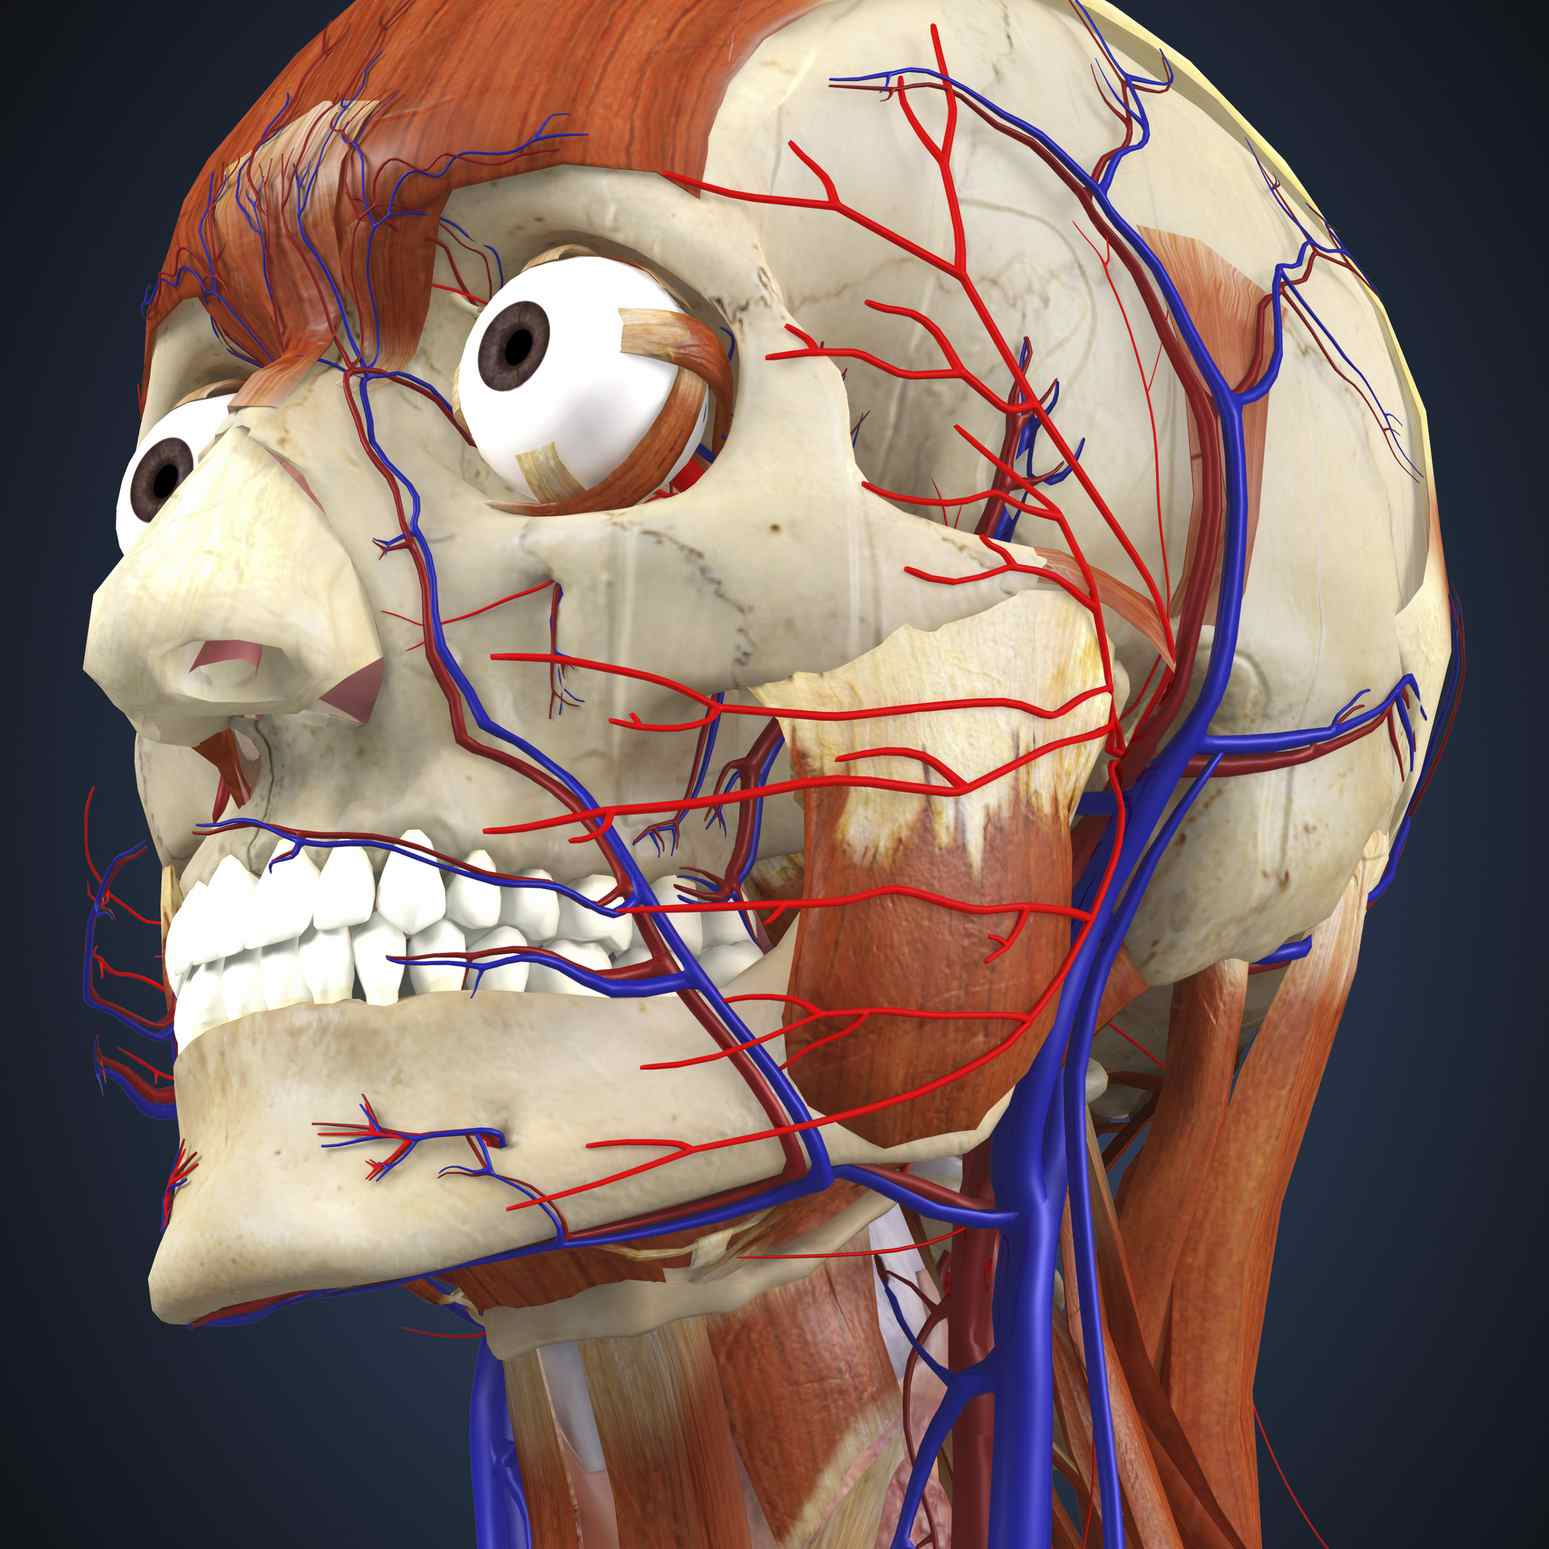 Human head with bone, muscles and circulatory system.